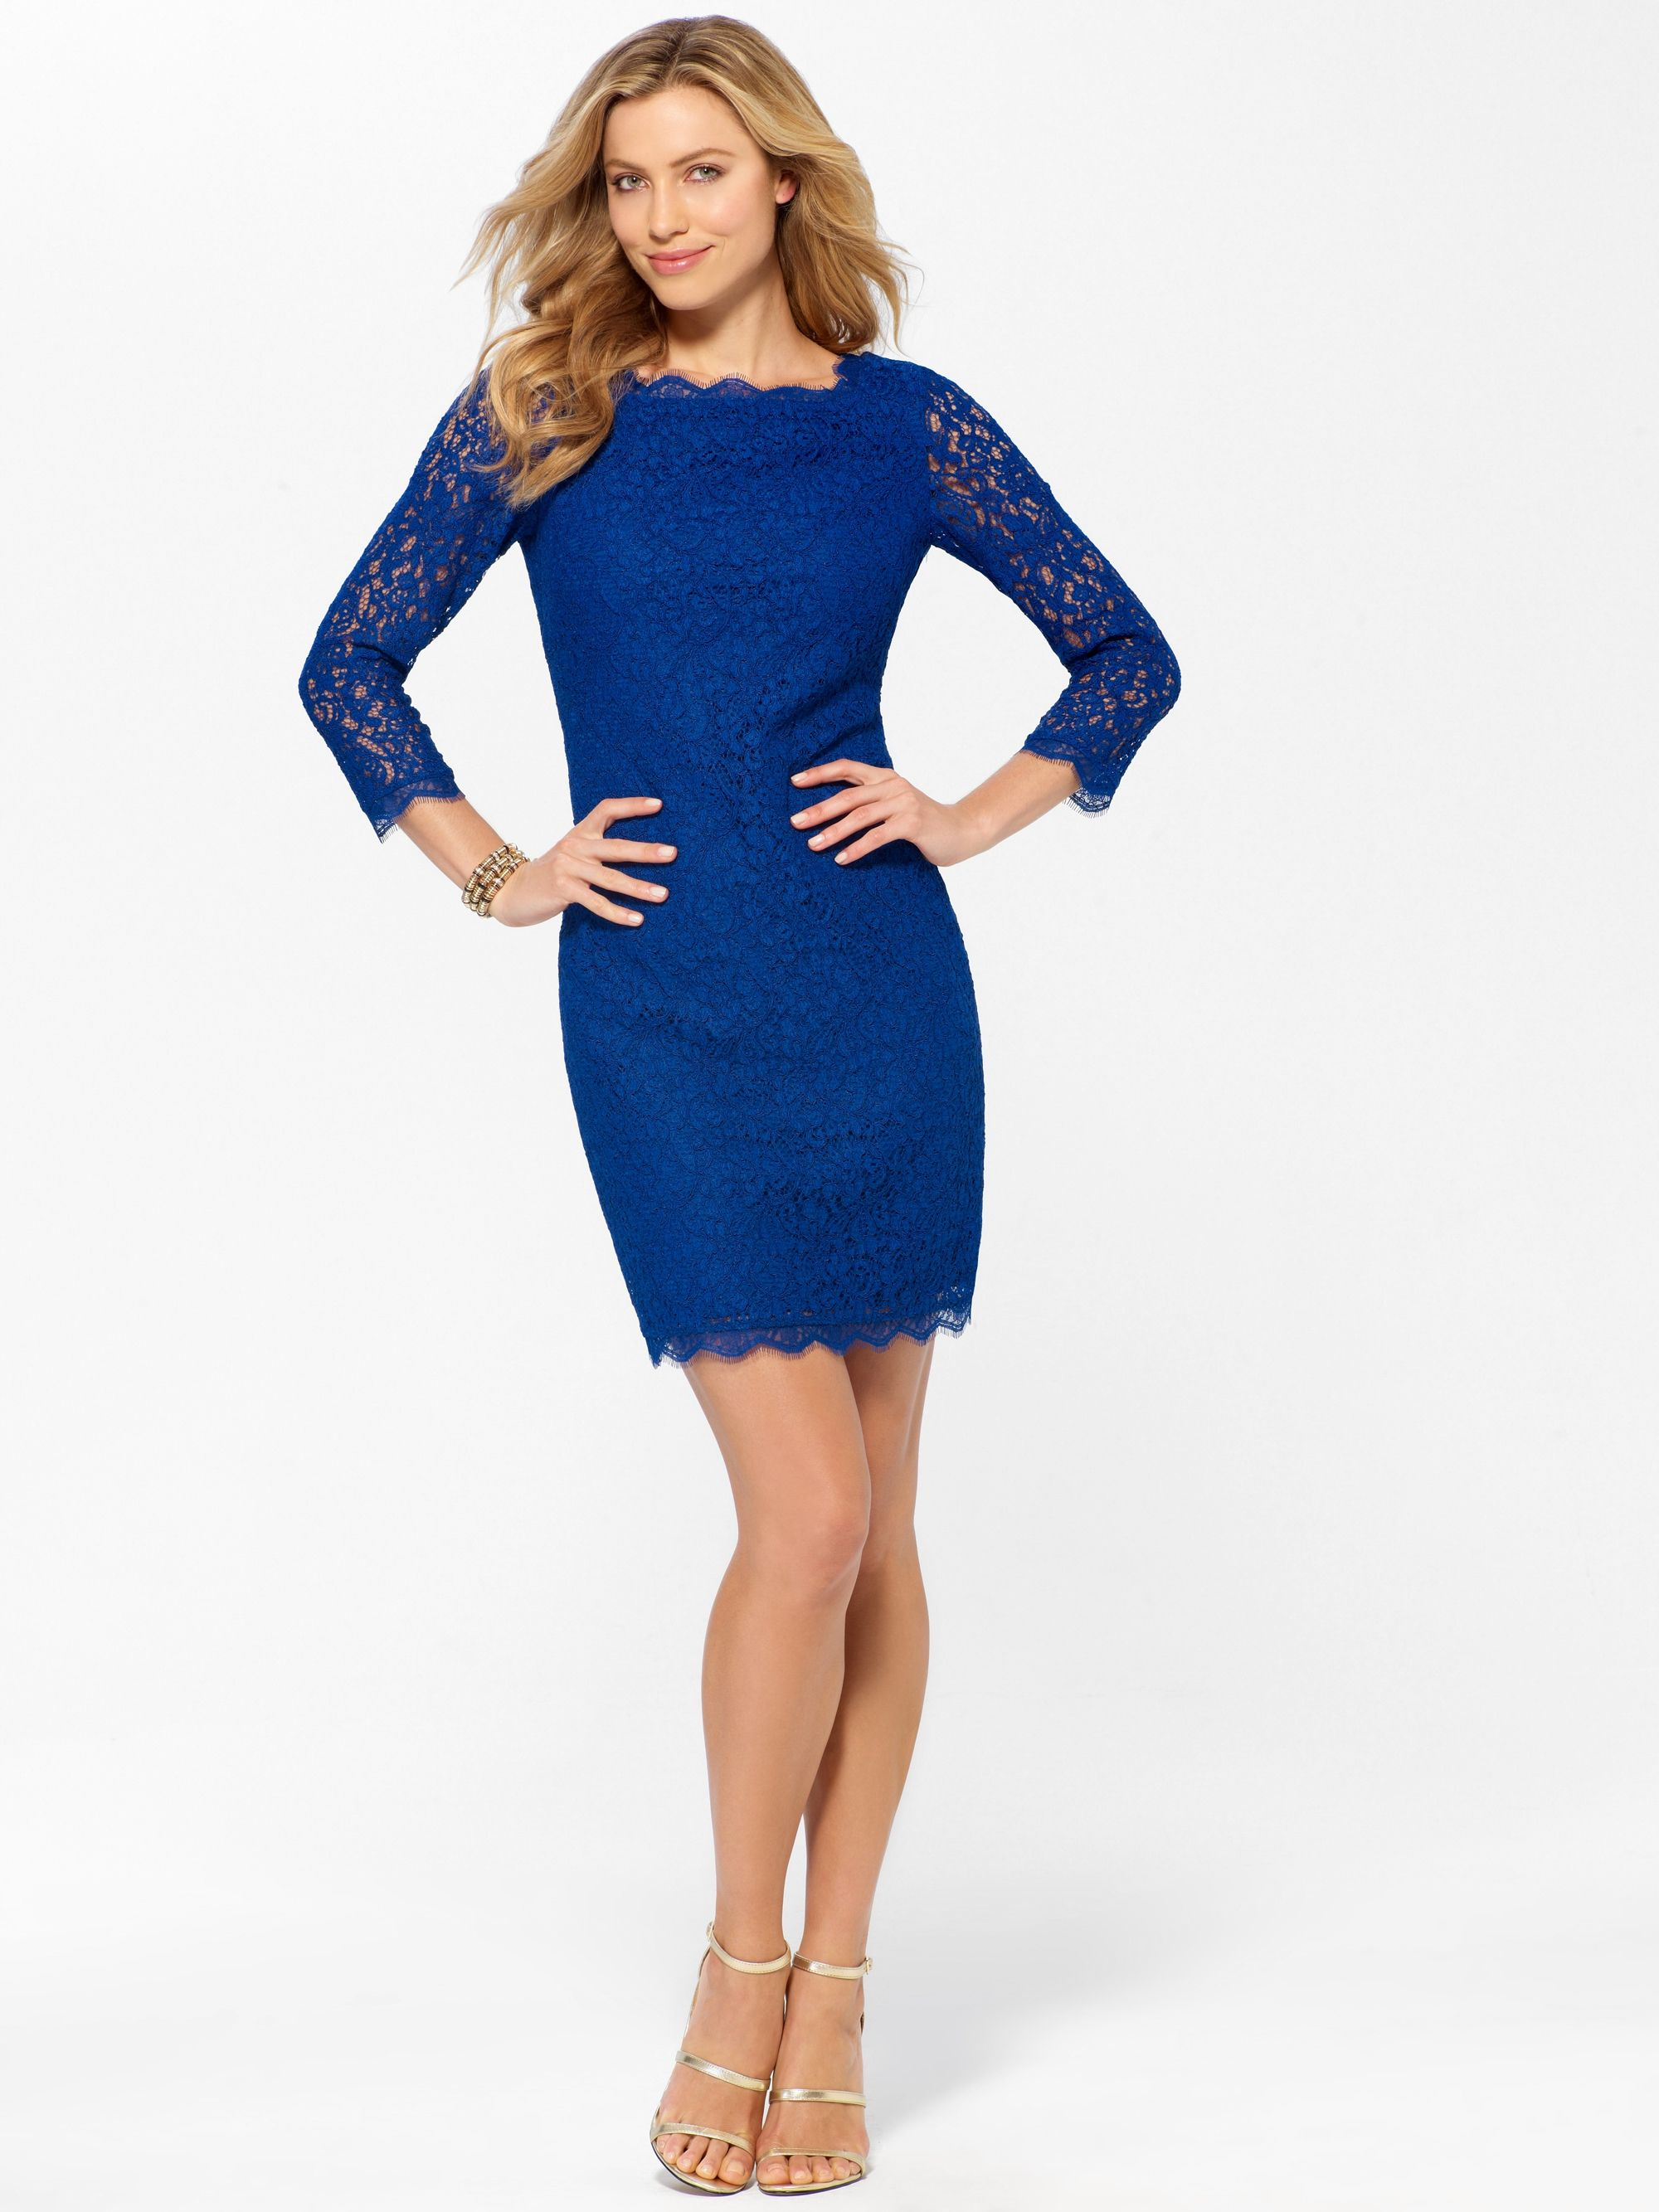 Dresses to wear to a fall wedding for a guest  COCKTAIL DRESSES  Cobalt Lace  Sleeve Dress  Caché Suitable for